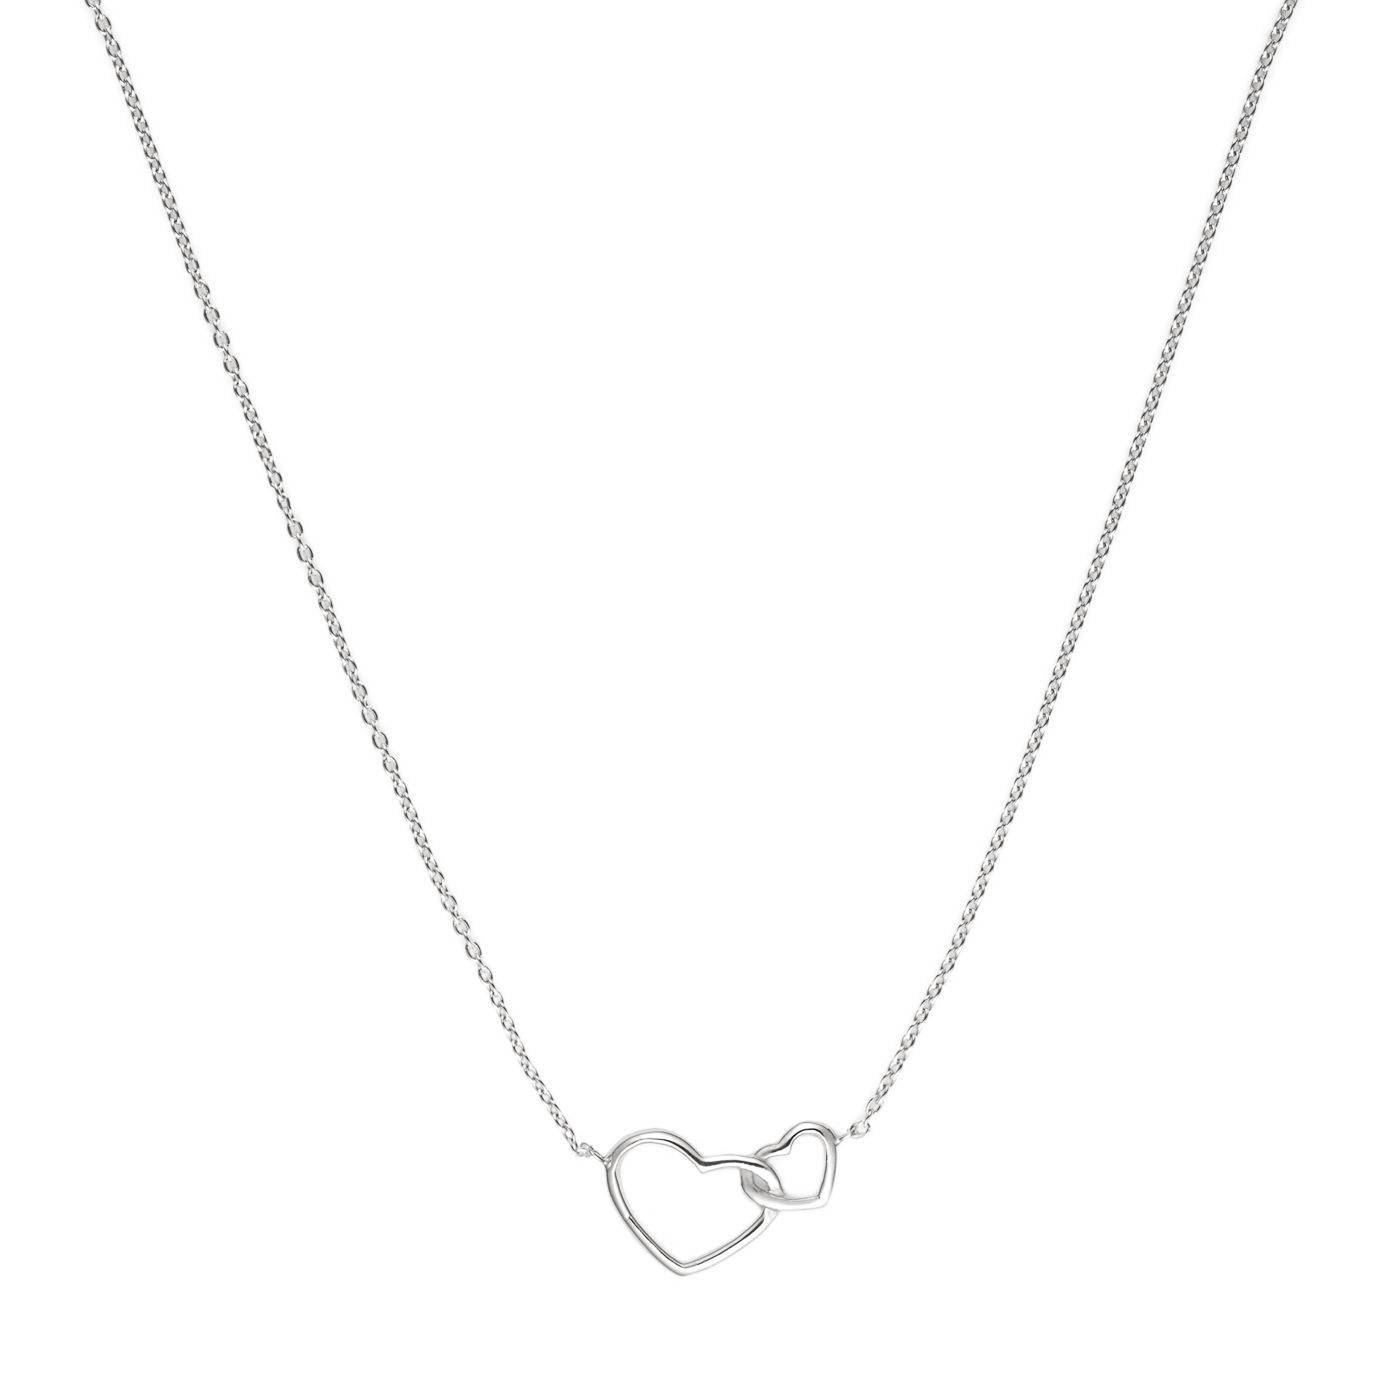 Lynn Manou 925 sterling silver necklace